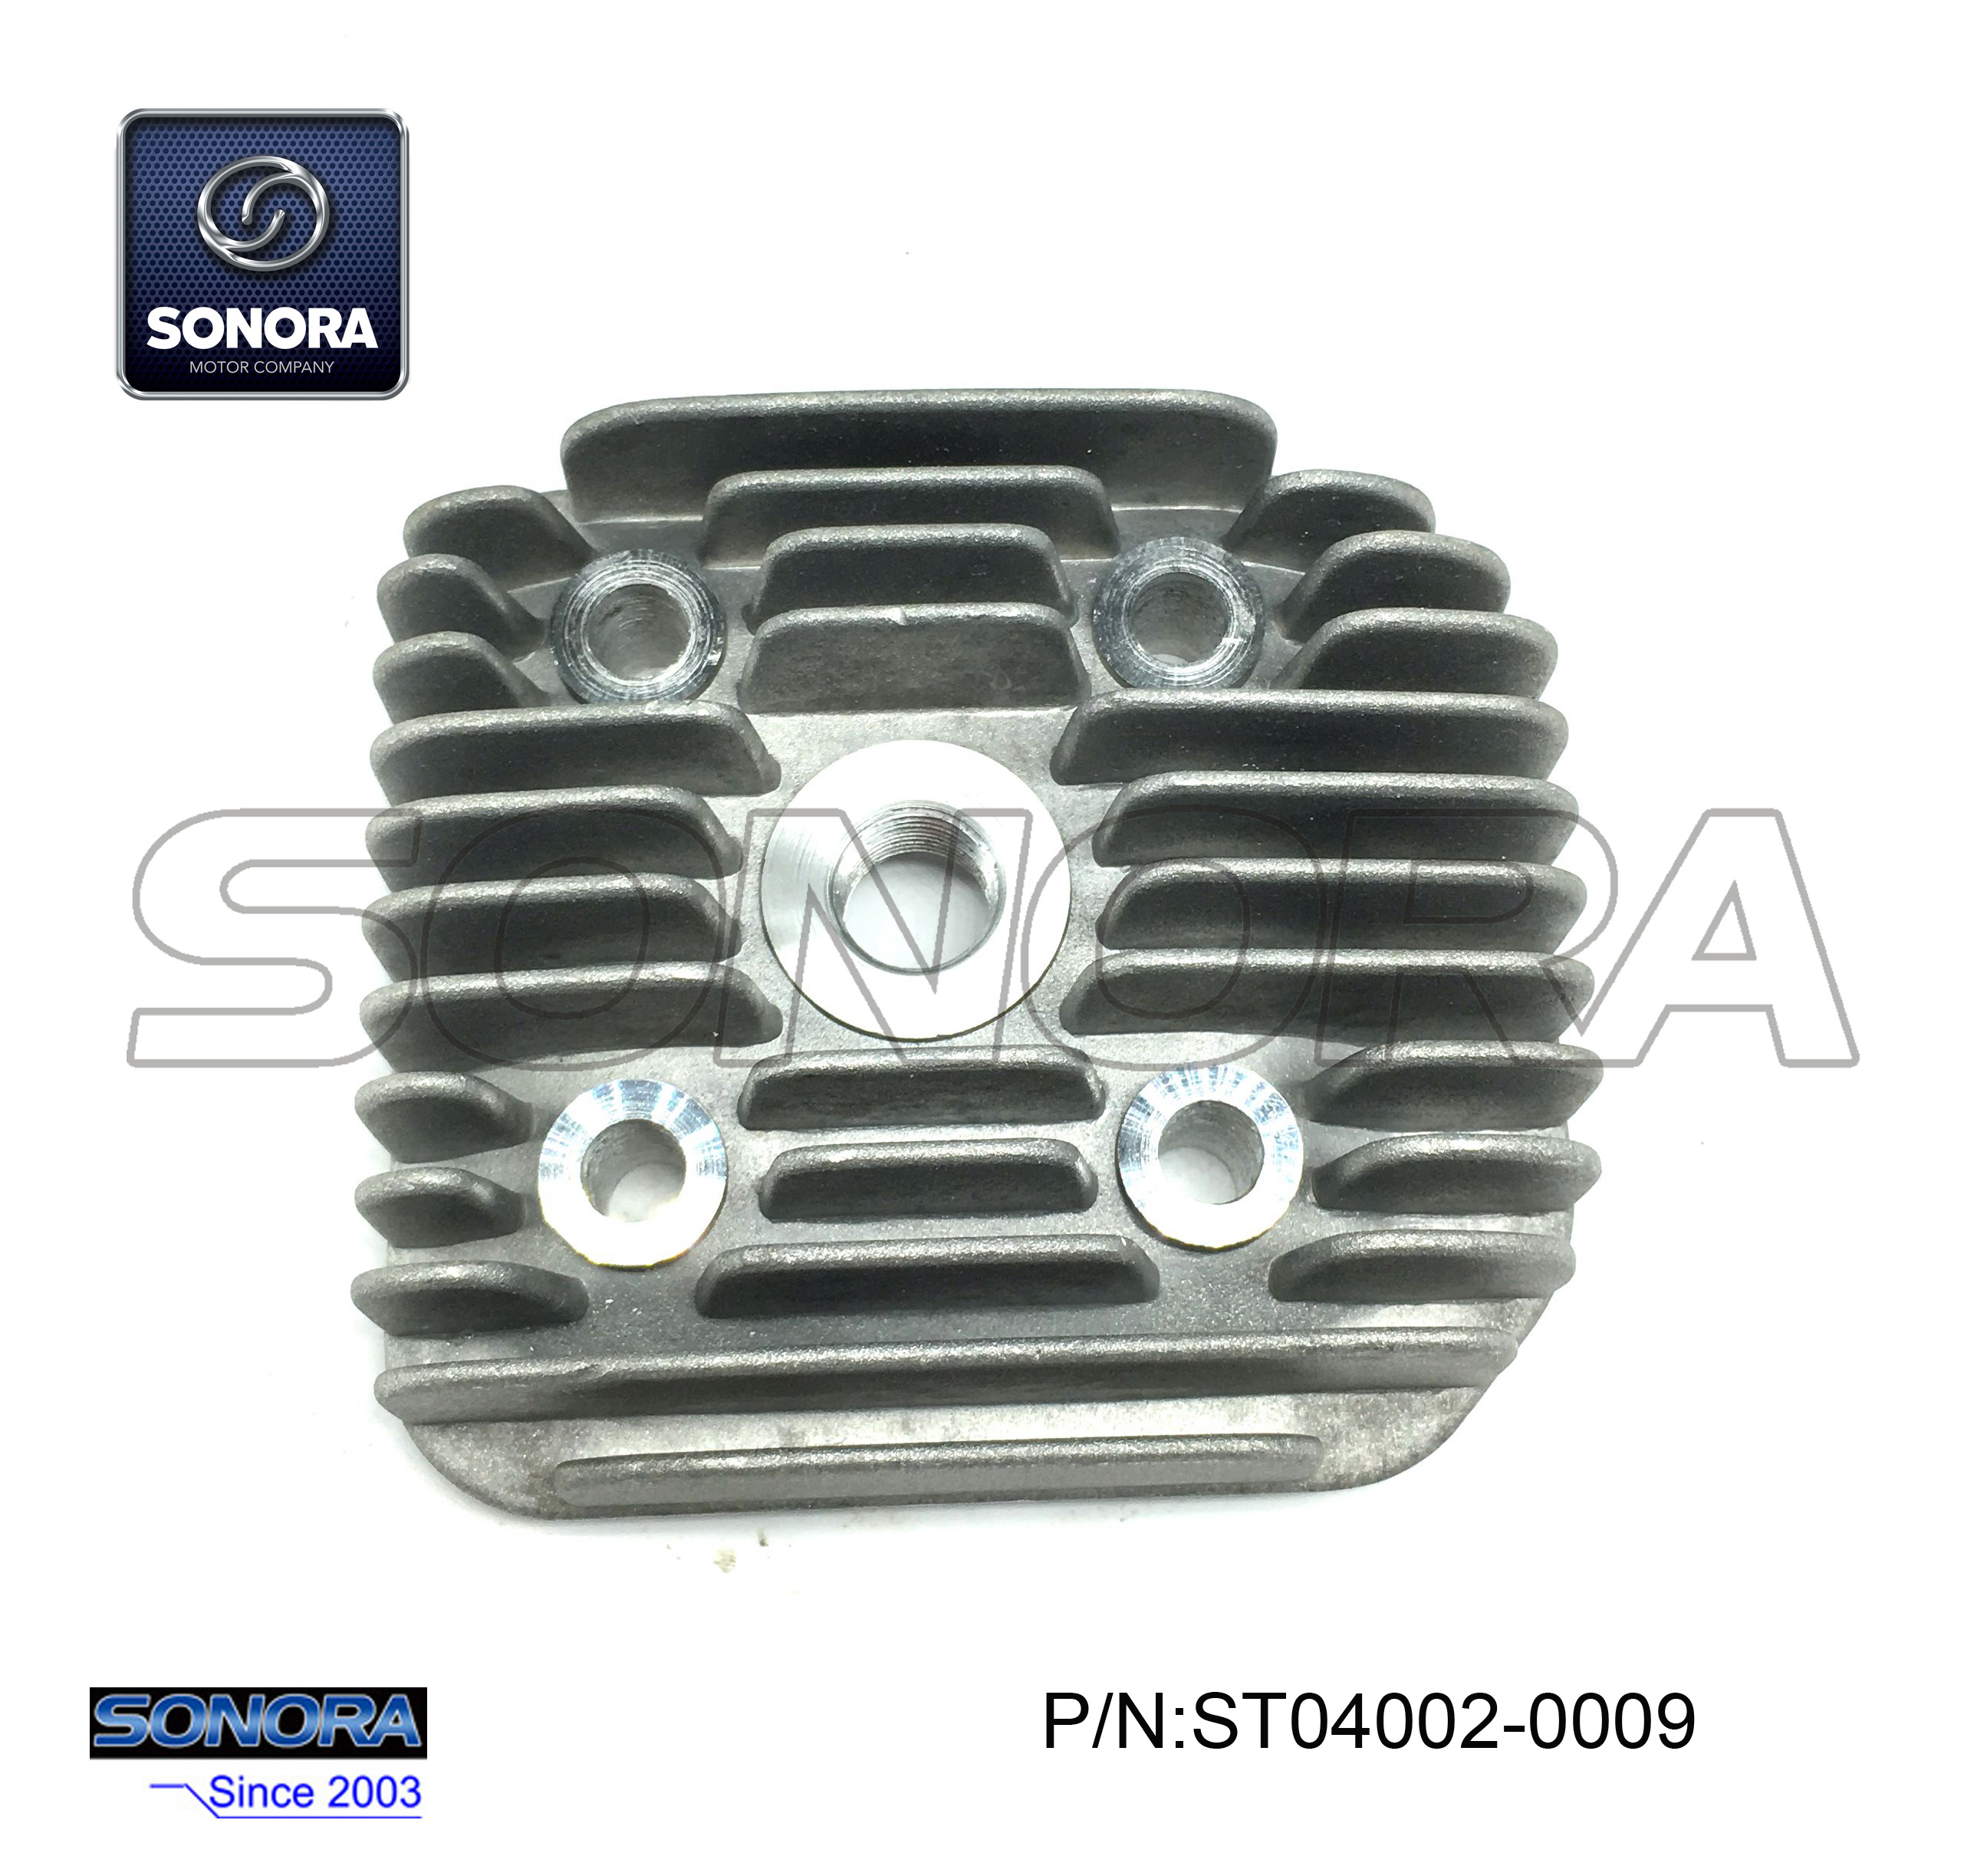 ST04002-0009 BWS Cylinder head for 40MM cylinder